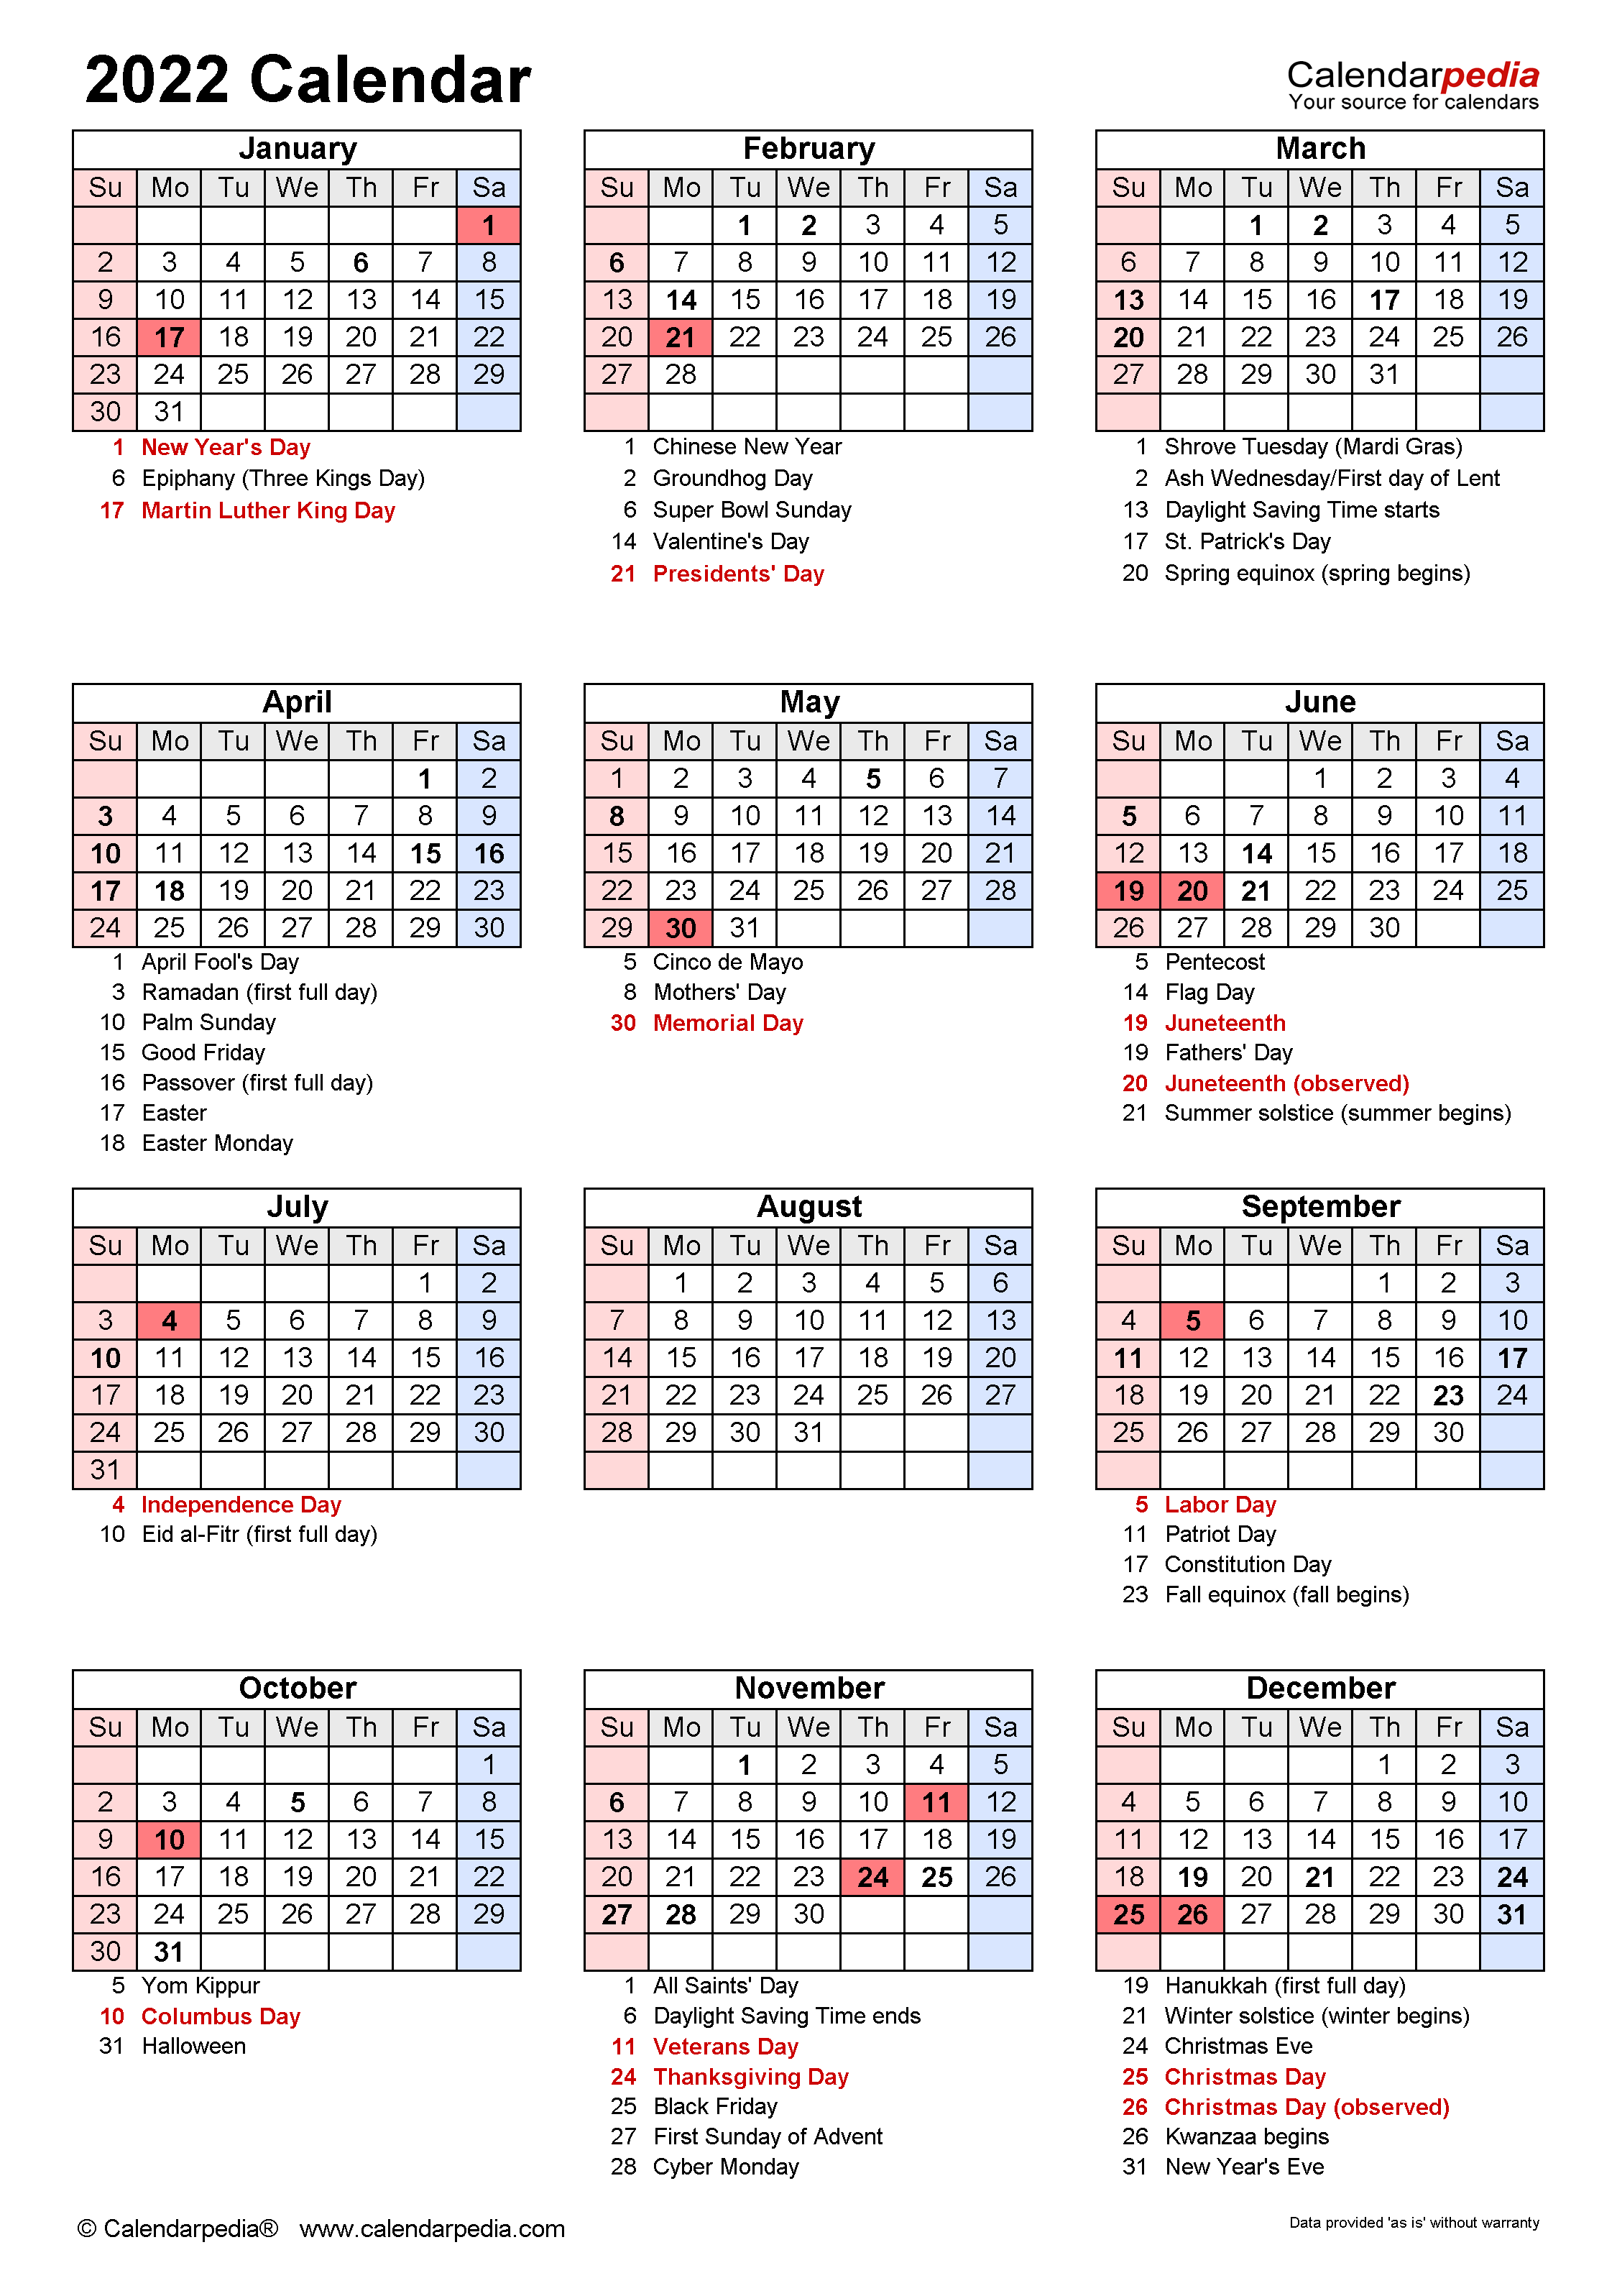 2022 Calendar - Free Printable Word Templates - Calendarpedia